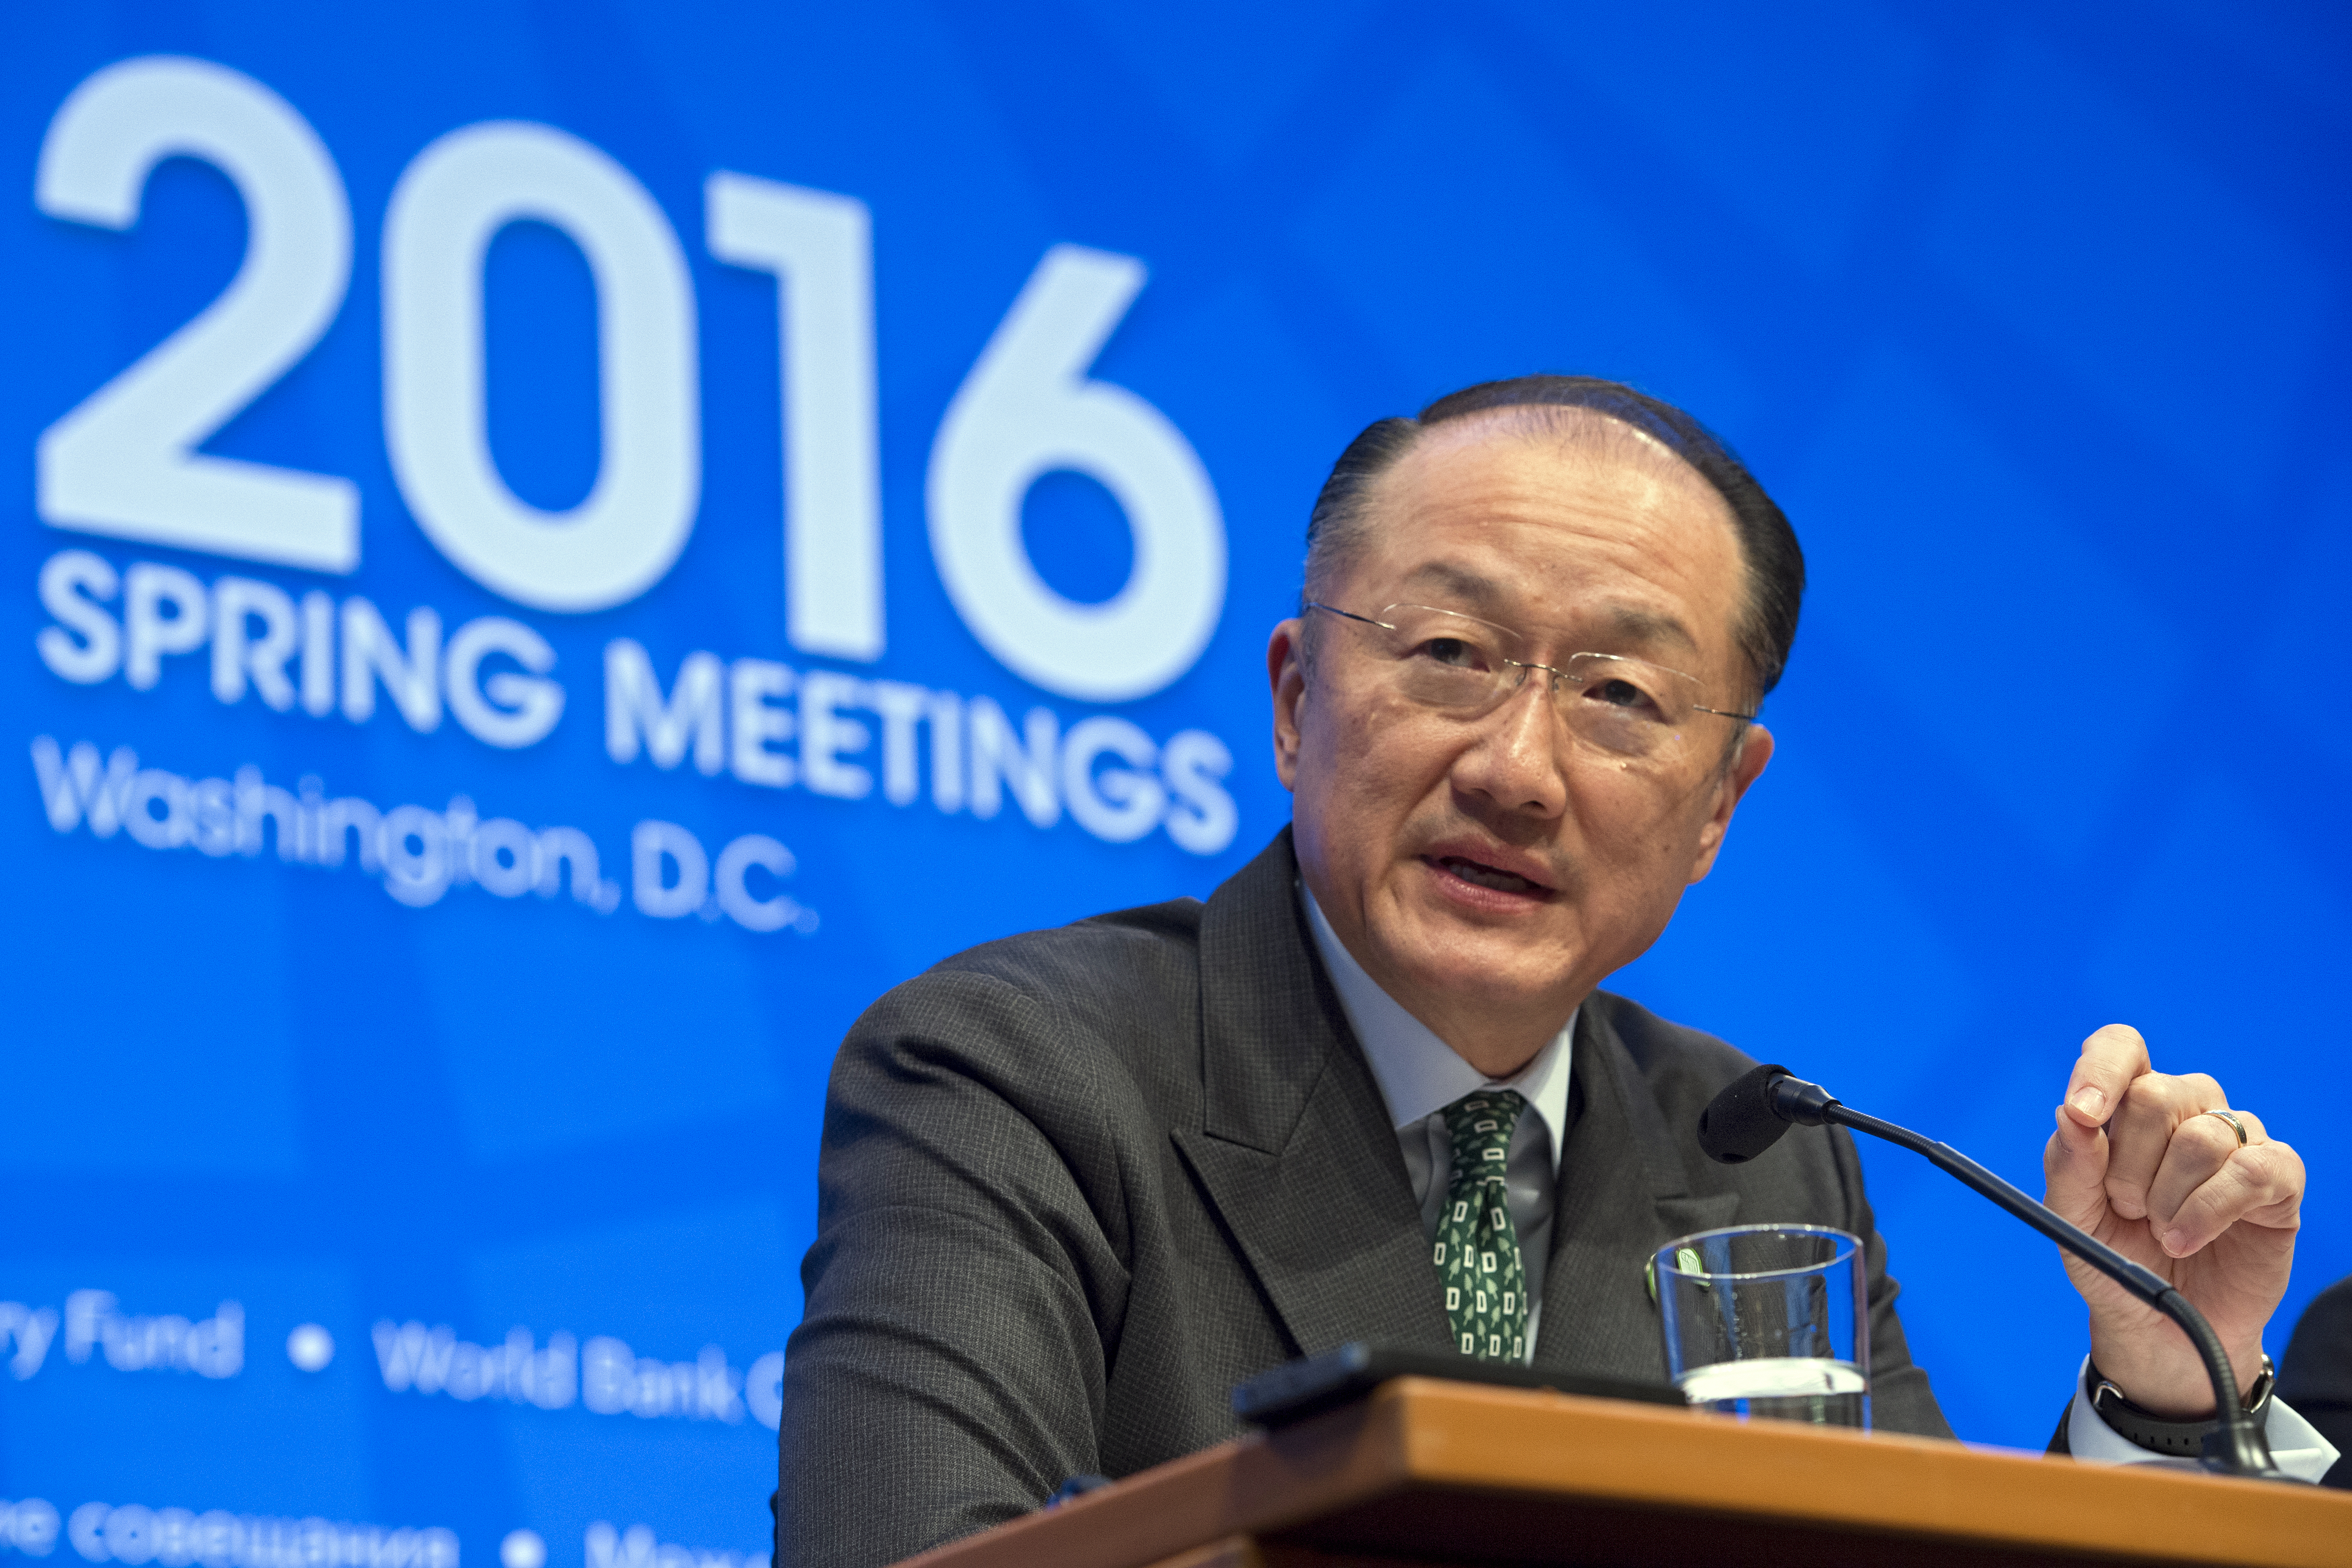 ECONOMIC OUTLOOK. World Bank Group President Jim Yong Kim responds to a question during the opening press conference at the International Monetary Fund (IMF) headquarters in Washington, DC, USA, April 14, 2016. Photo by Shawn Thew/EPA